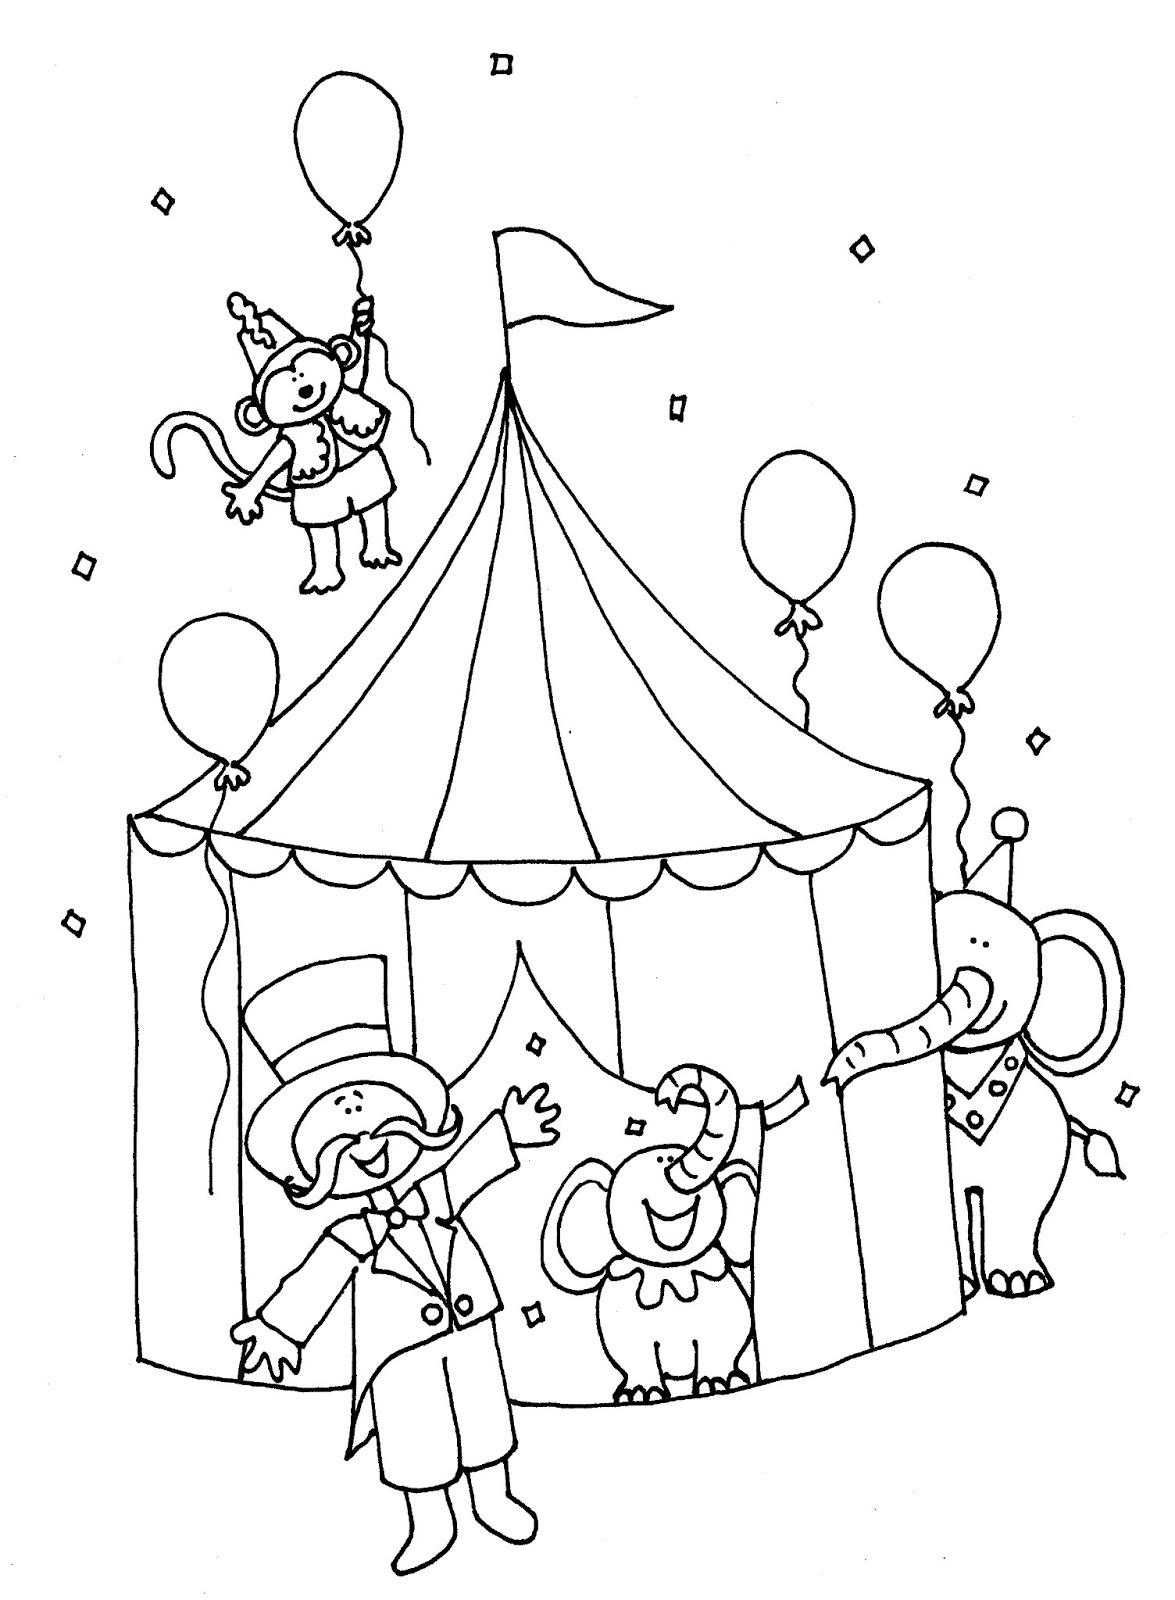 Free Dearie Dolls Digi Stamps: Big Top Circus color and B/W